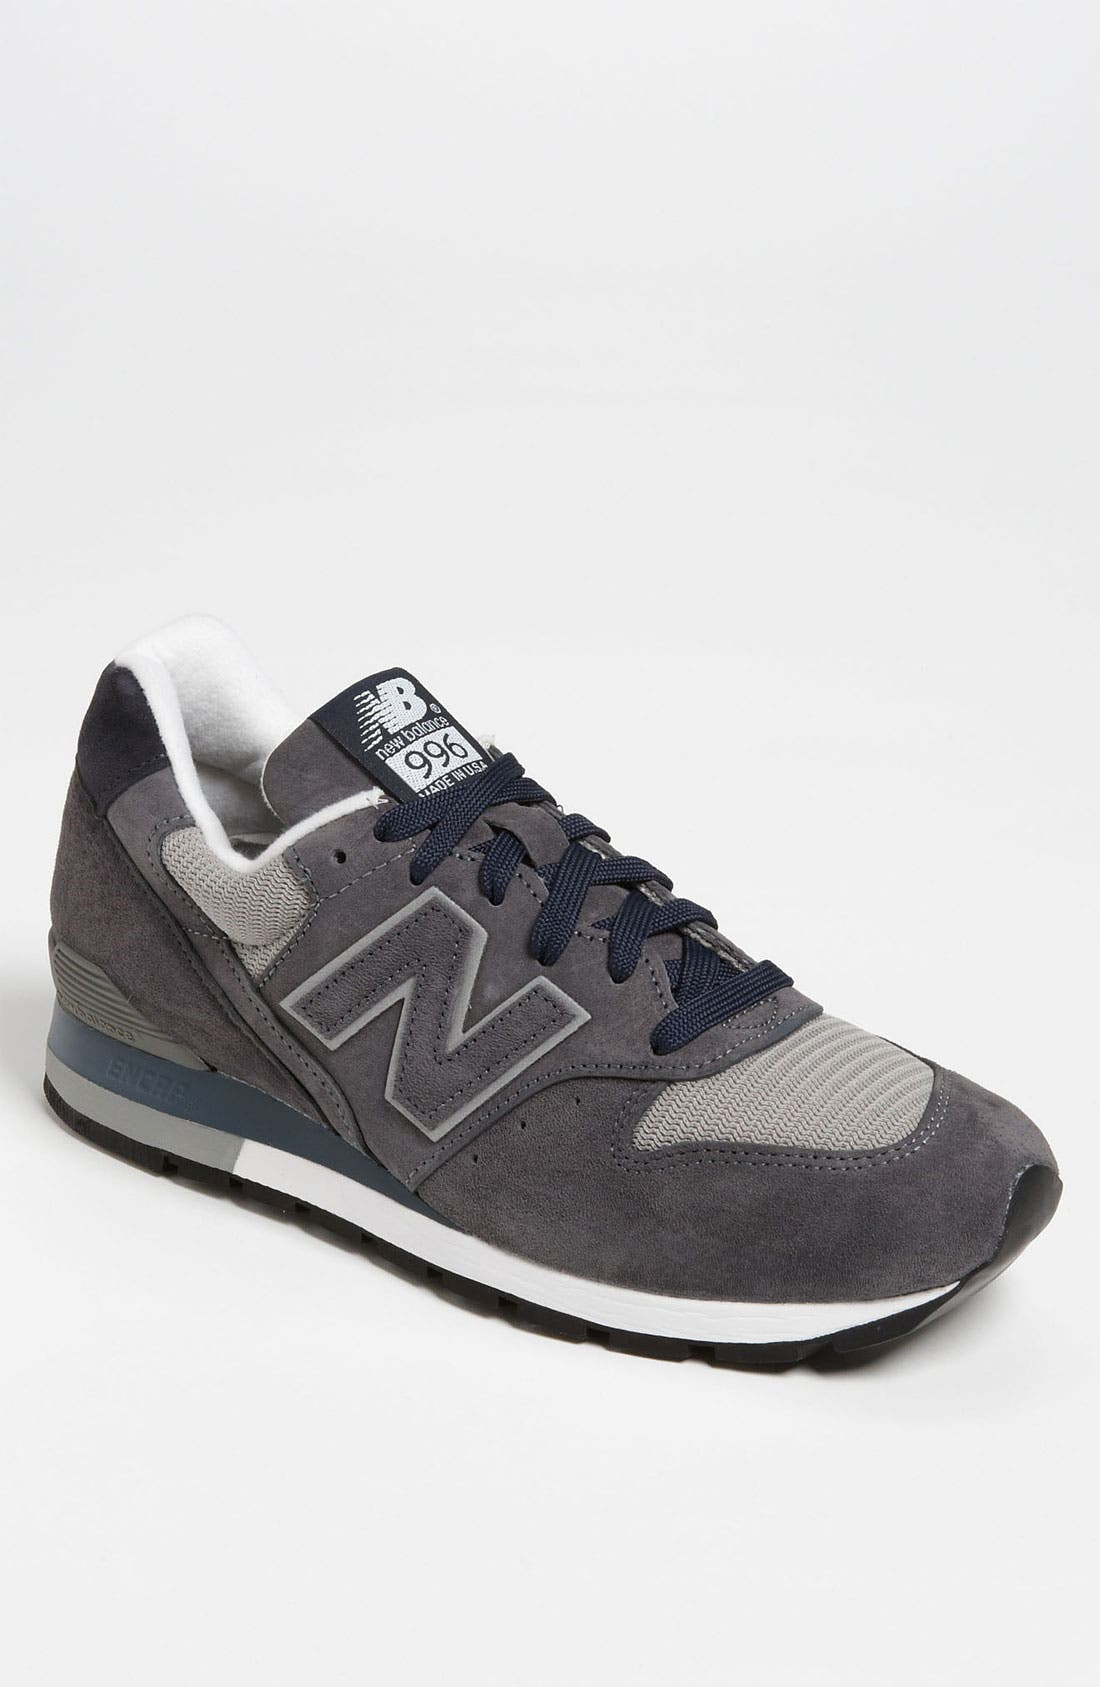 Alternate Image 1 Selected - New Balance '996' Sneaker (Men) (Online Only)